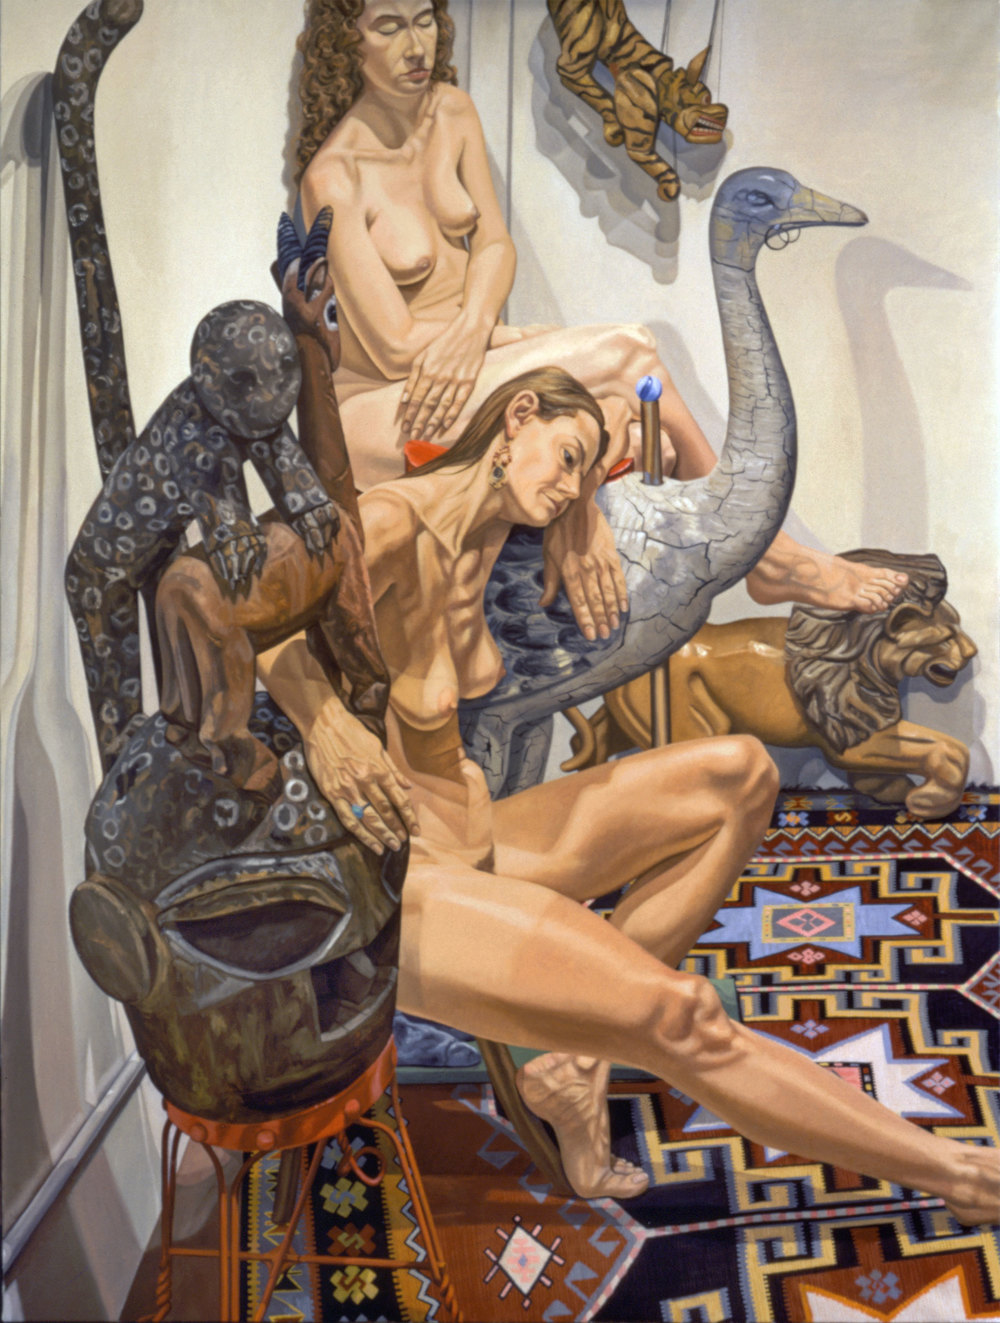 TWO NUDES WITH YORUBA MASK & CAROUSEL  OSTRICH   ,   1994   Oil on canvas   96 x 72 inches